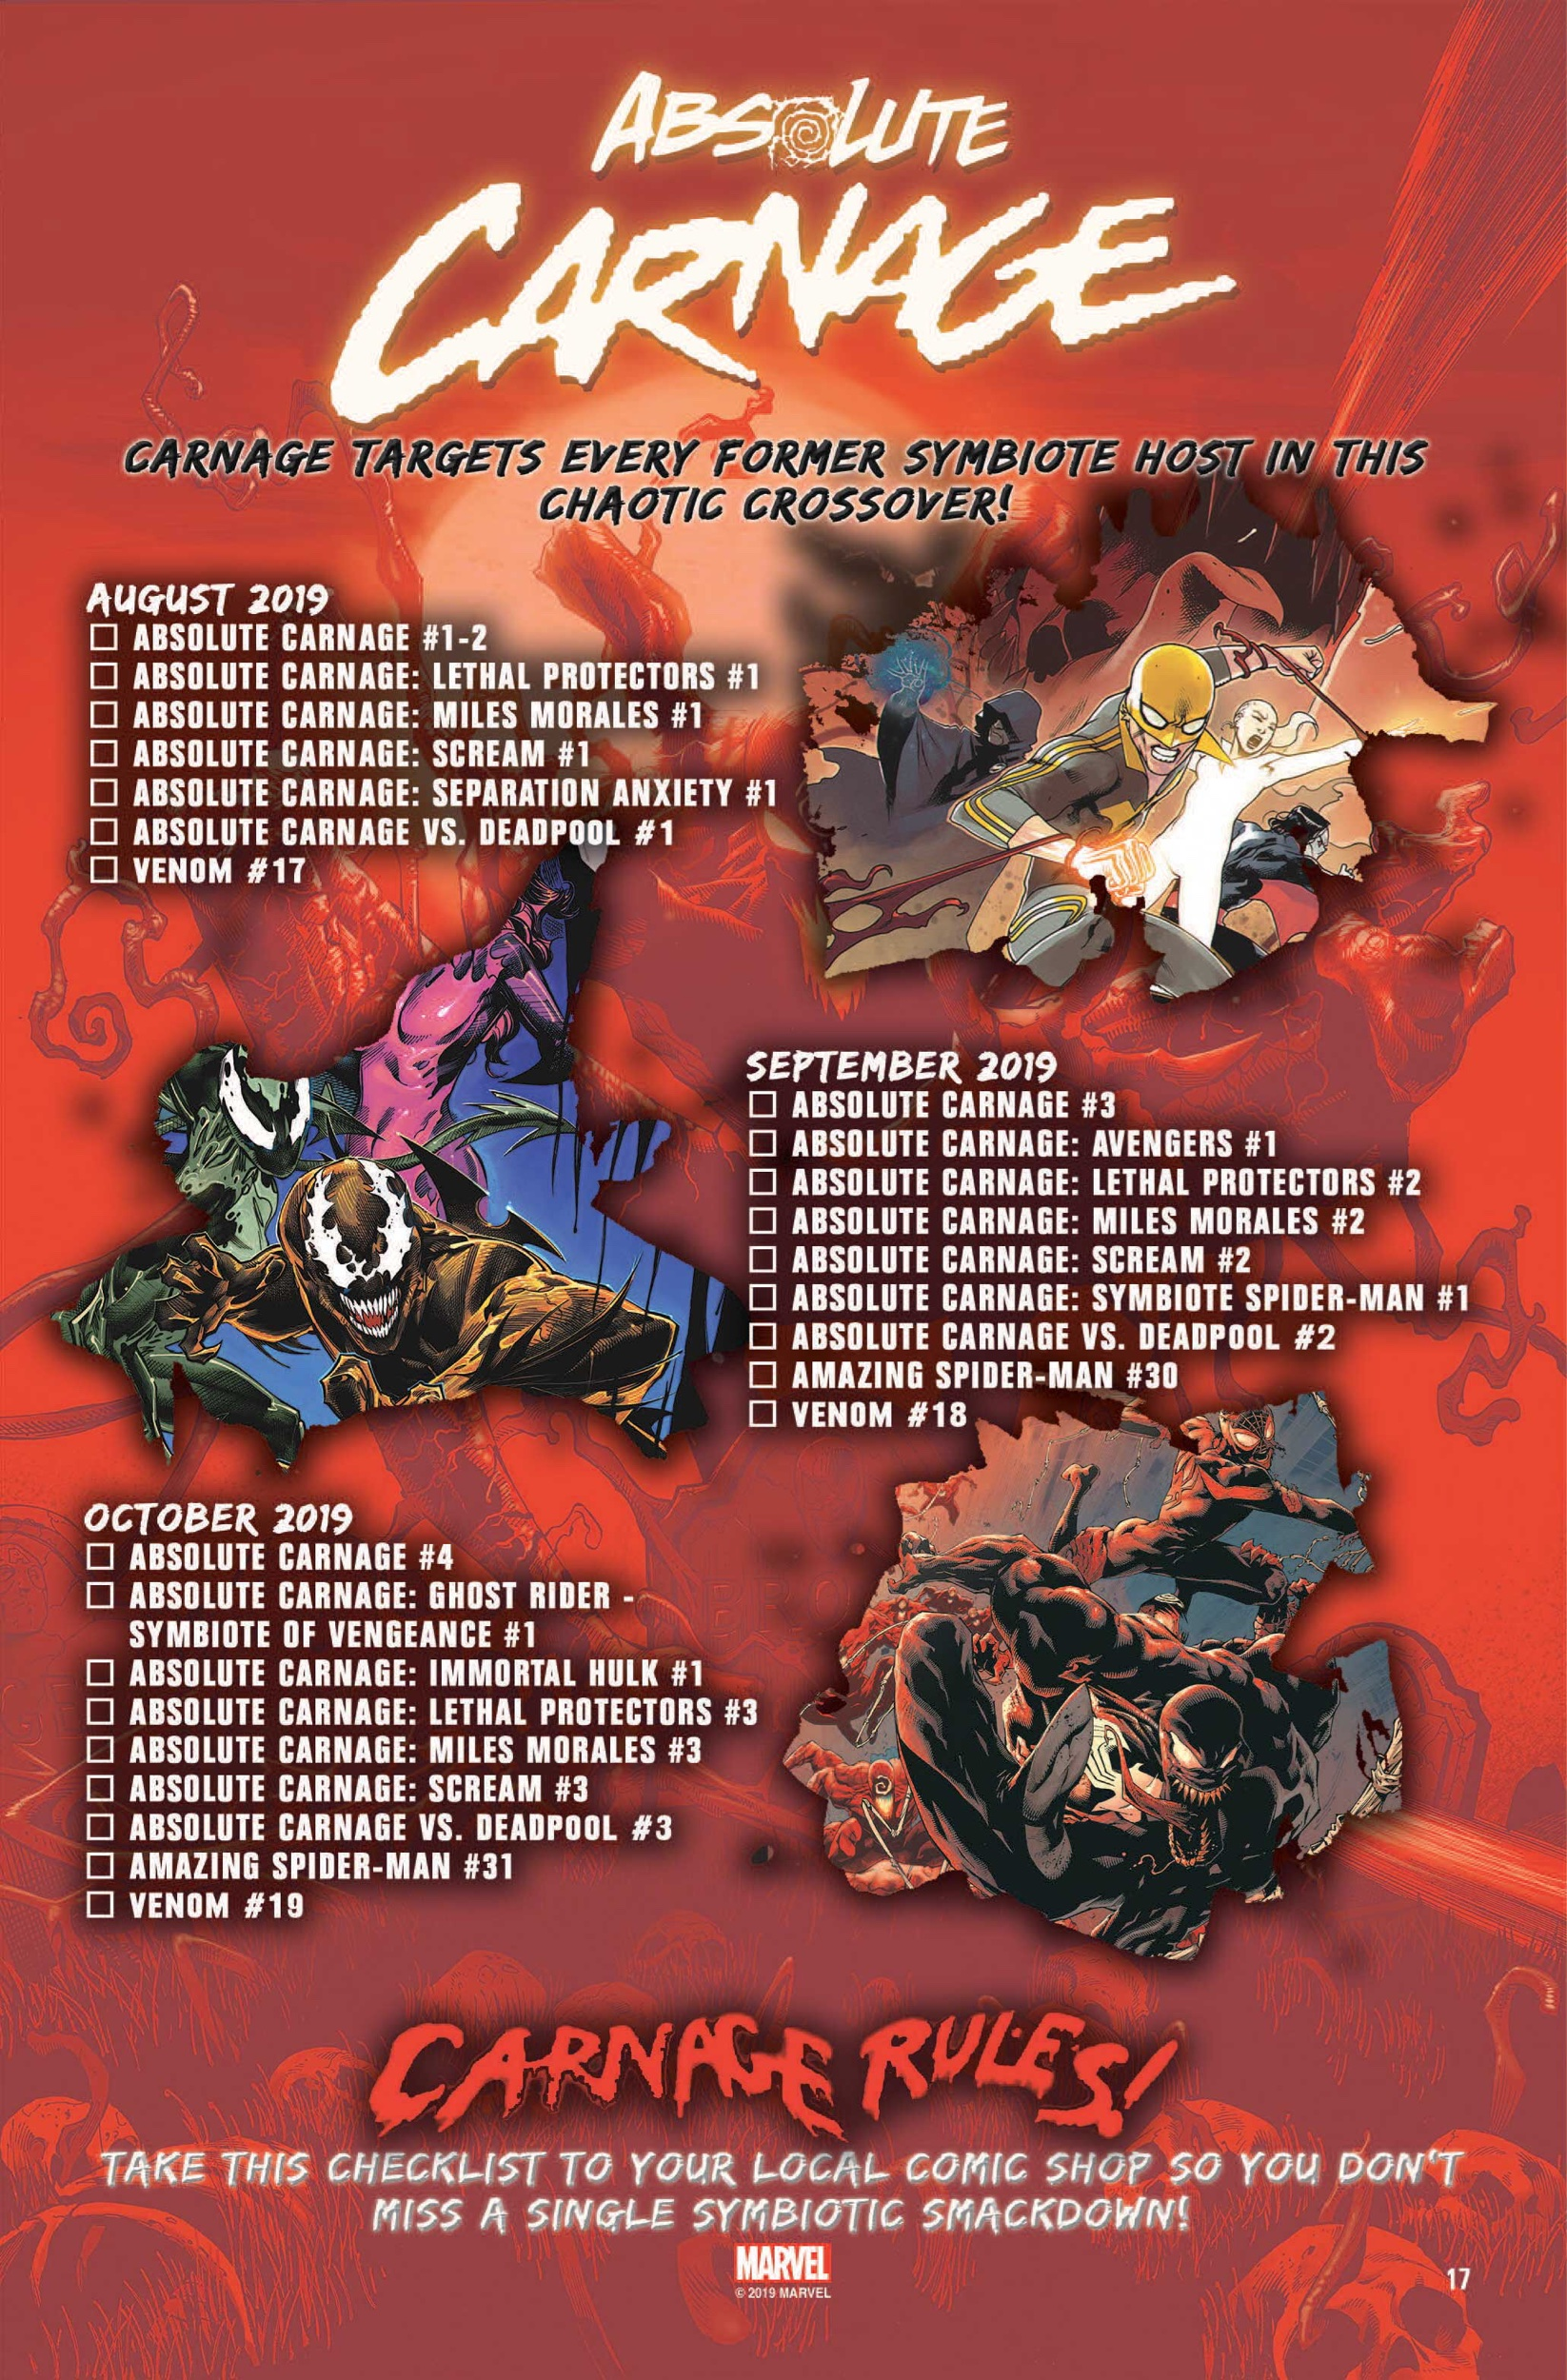 Absolute Carnage checklist